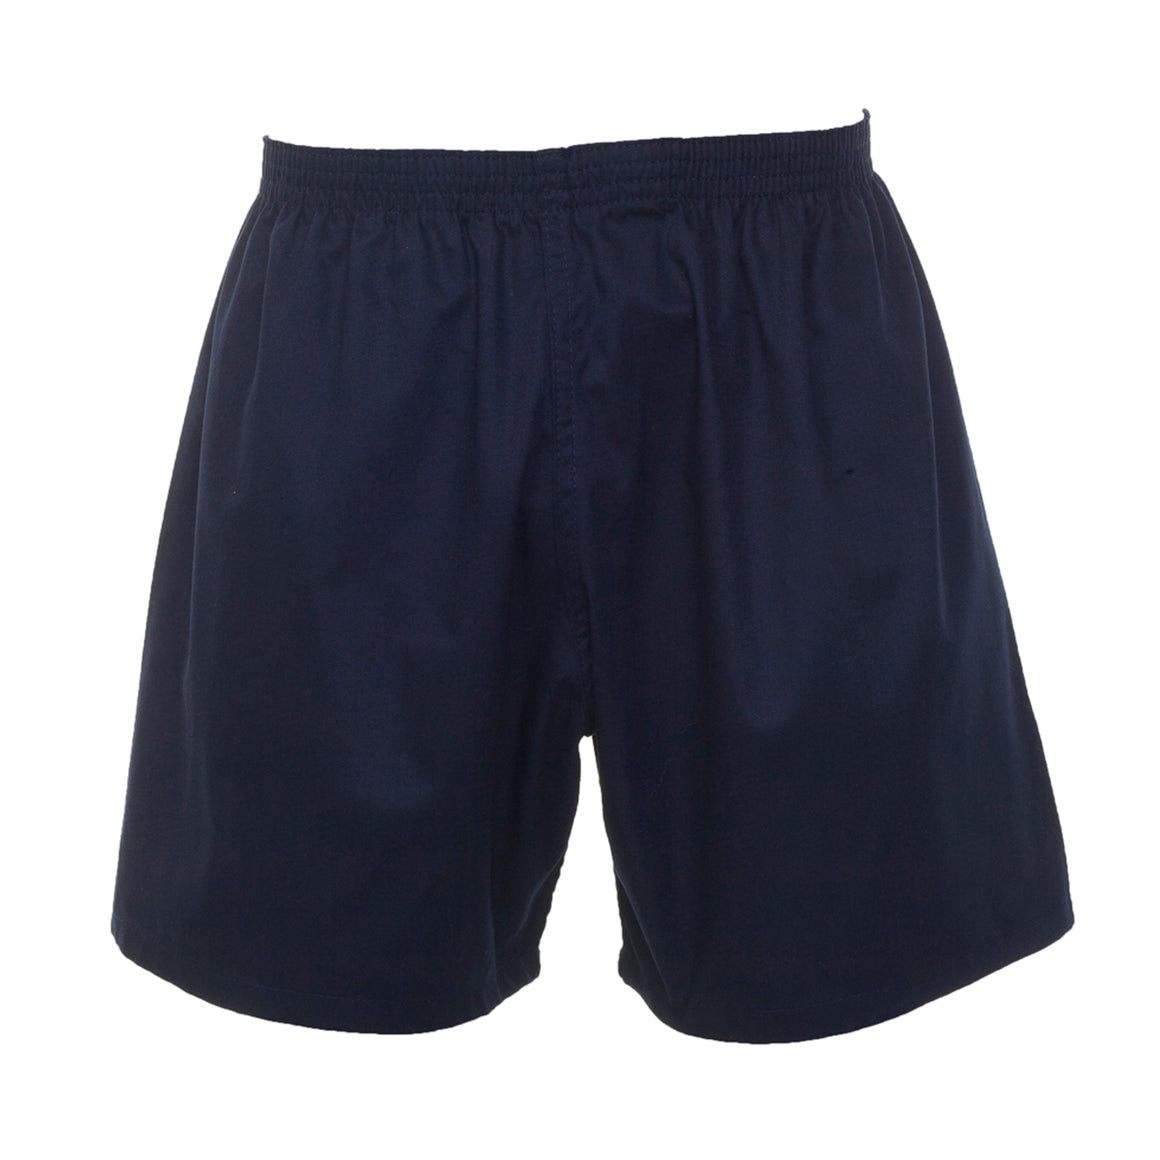 PE Games Short for Kids in Navy